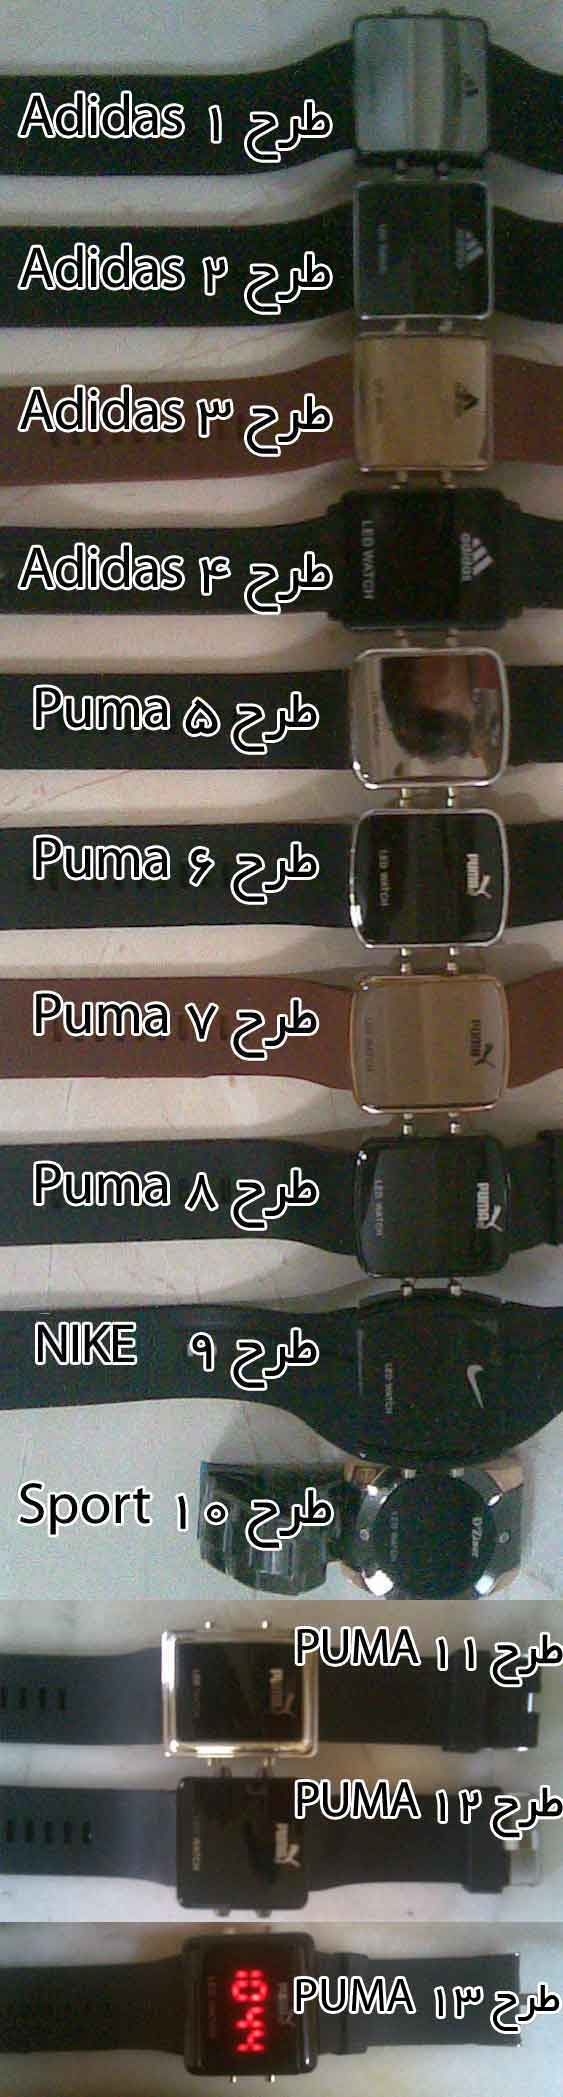 saat led خرید ساعت led ال ای دی پوما Led Watch PUMA